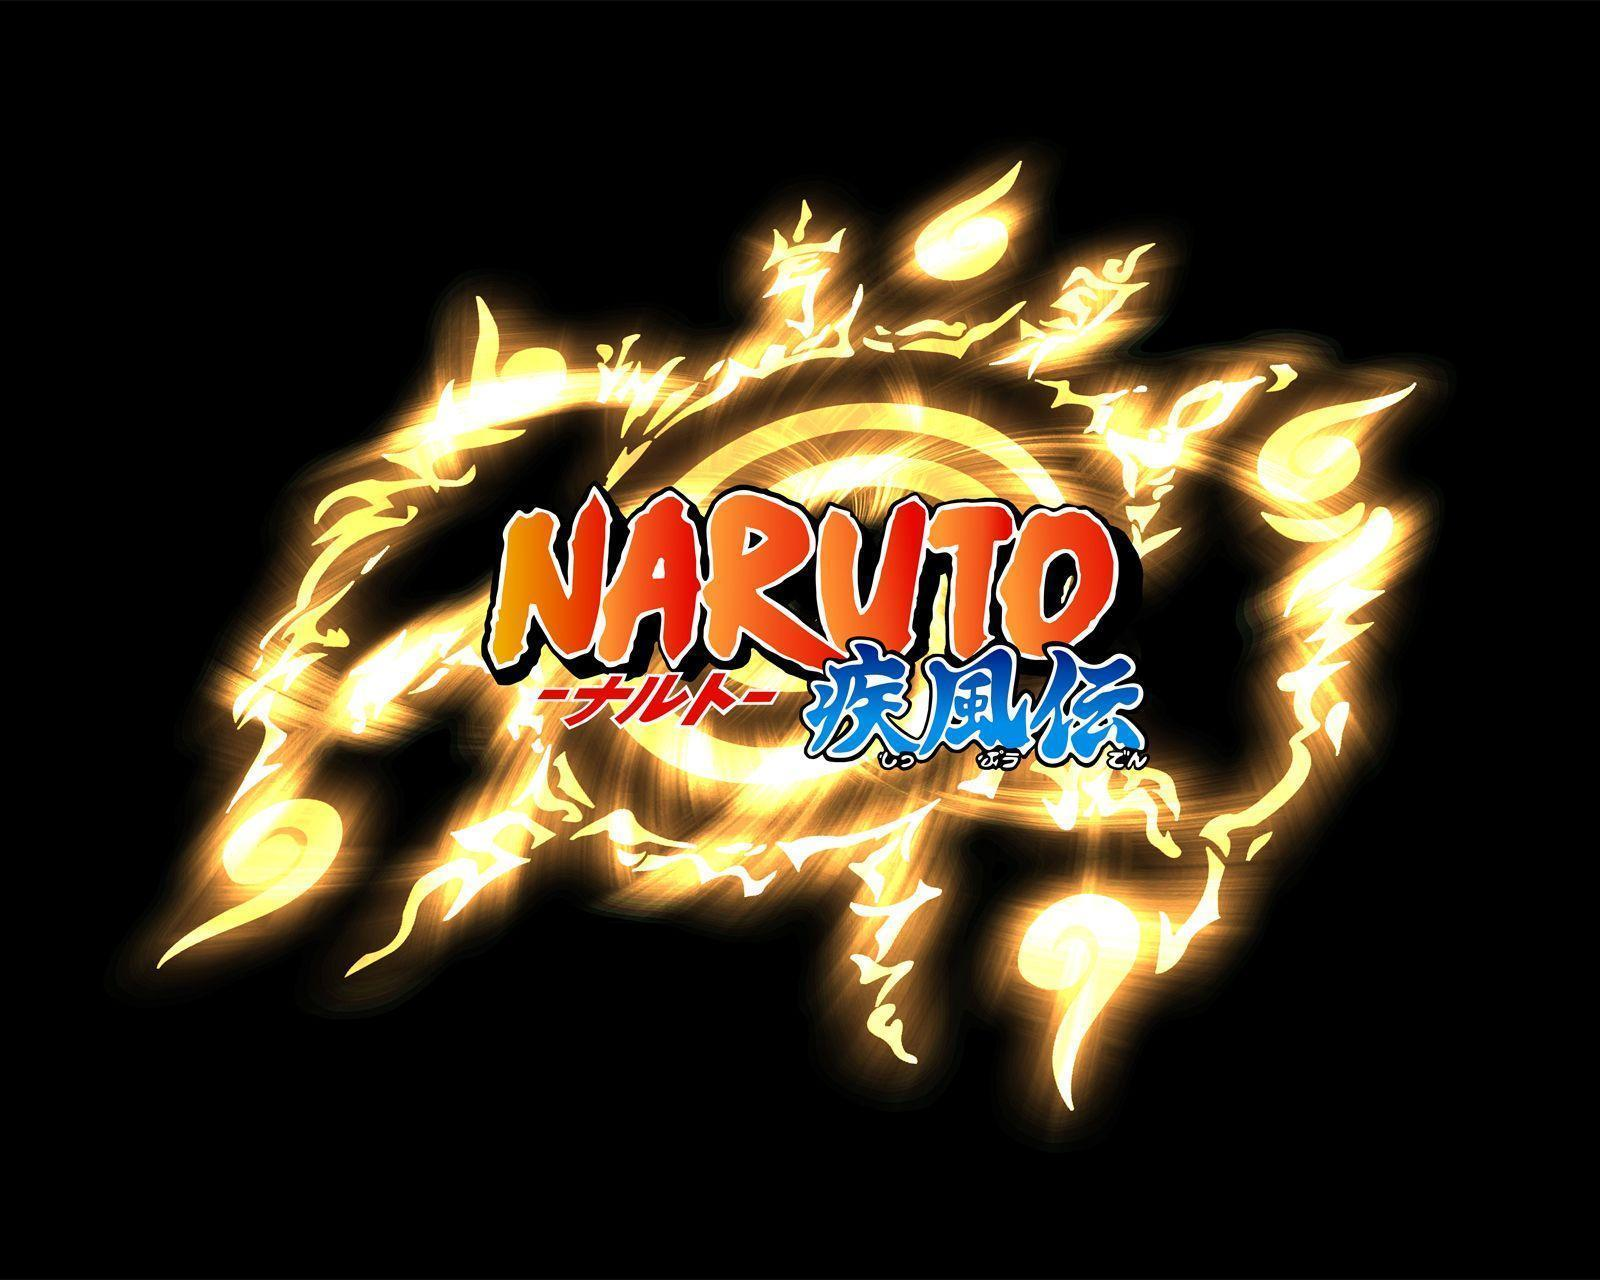 Naruto Logo Wallpapers Top Free Naruto Logo Backgrounds Wallpaperaccess